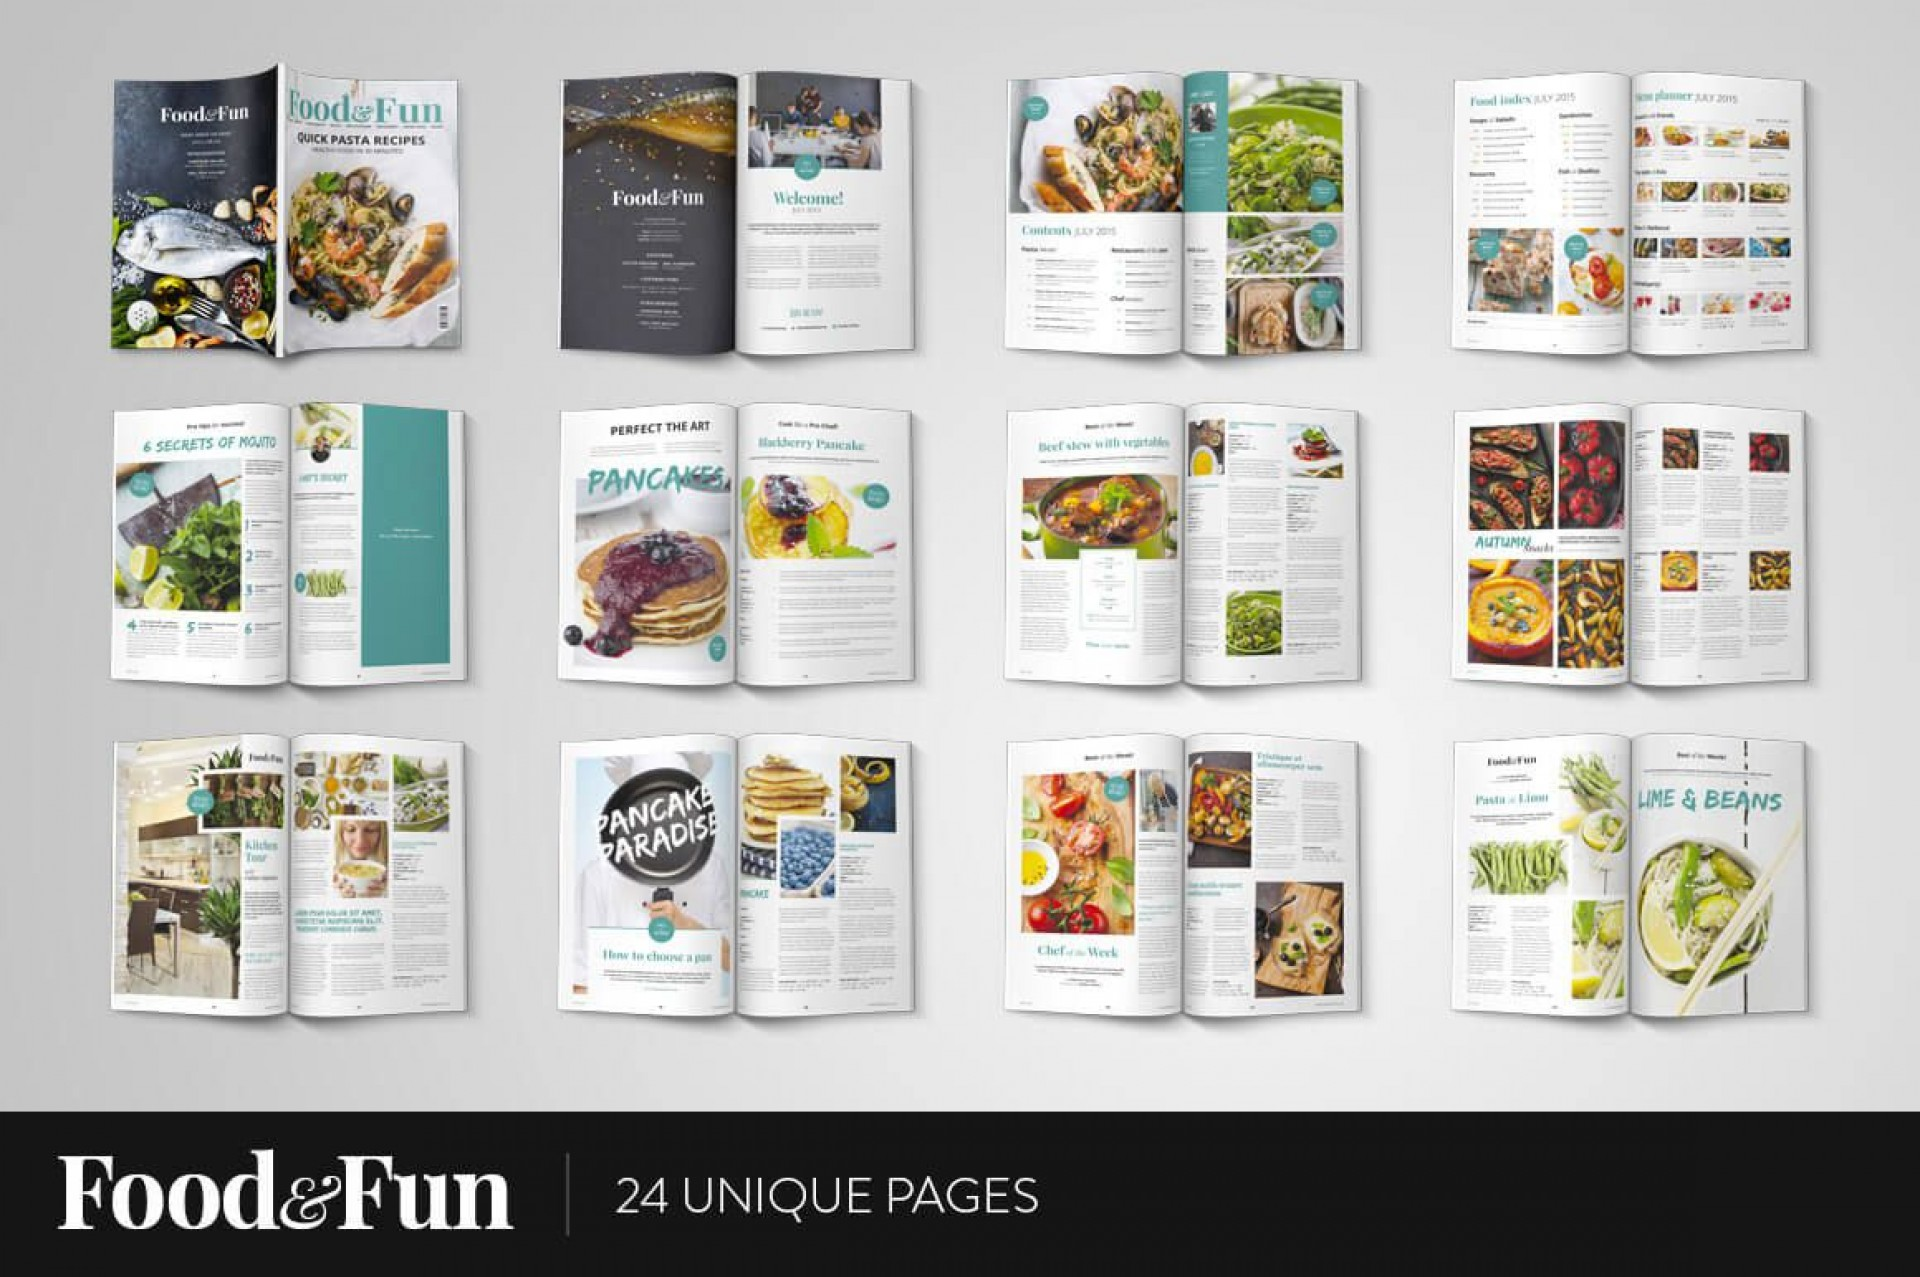 003 Surprising Free Magazine Layout Template Highest Clarity  Templates For Word Microsoft Powerpoint1920